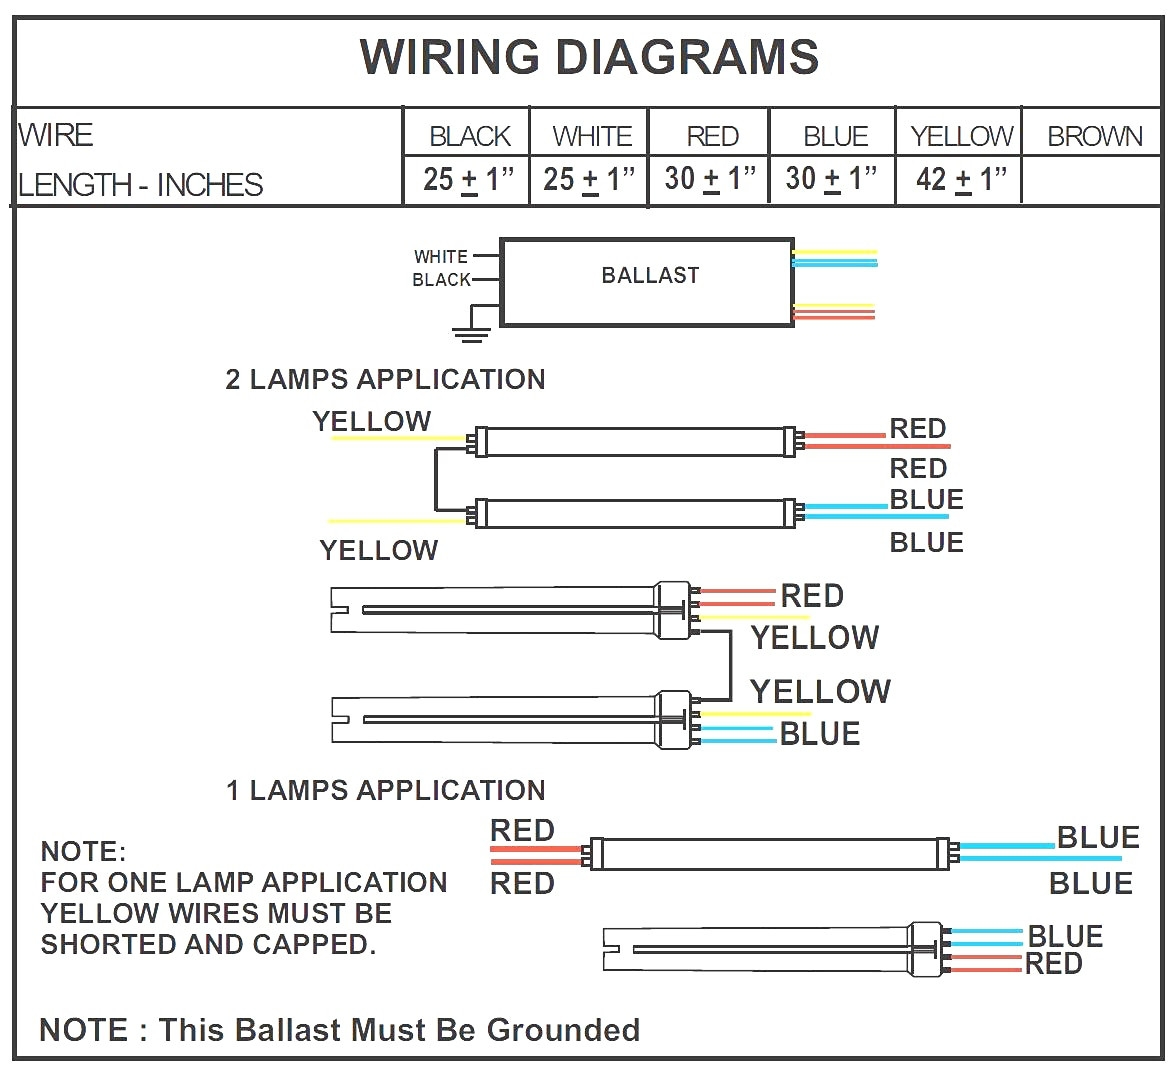 fulham workhorse ballast wiring diagram Download-Fulham Workhorse Ballast Wiring Diagram Collection 4 lamp t5 ballast wiring diagram b2network co in 14-b